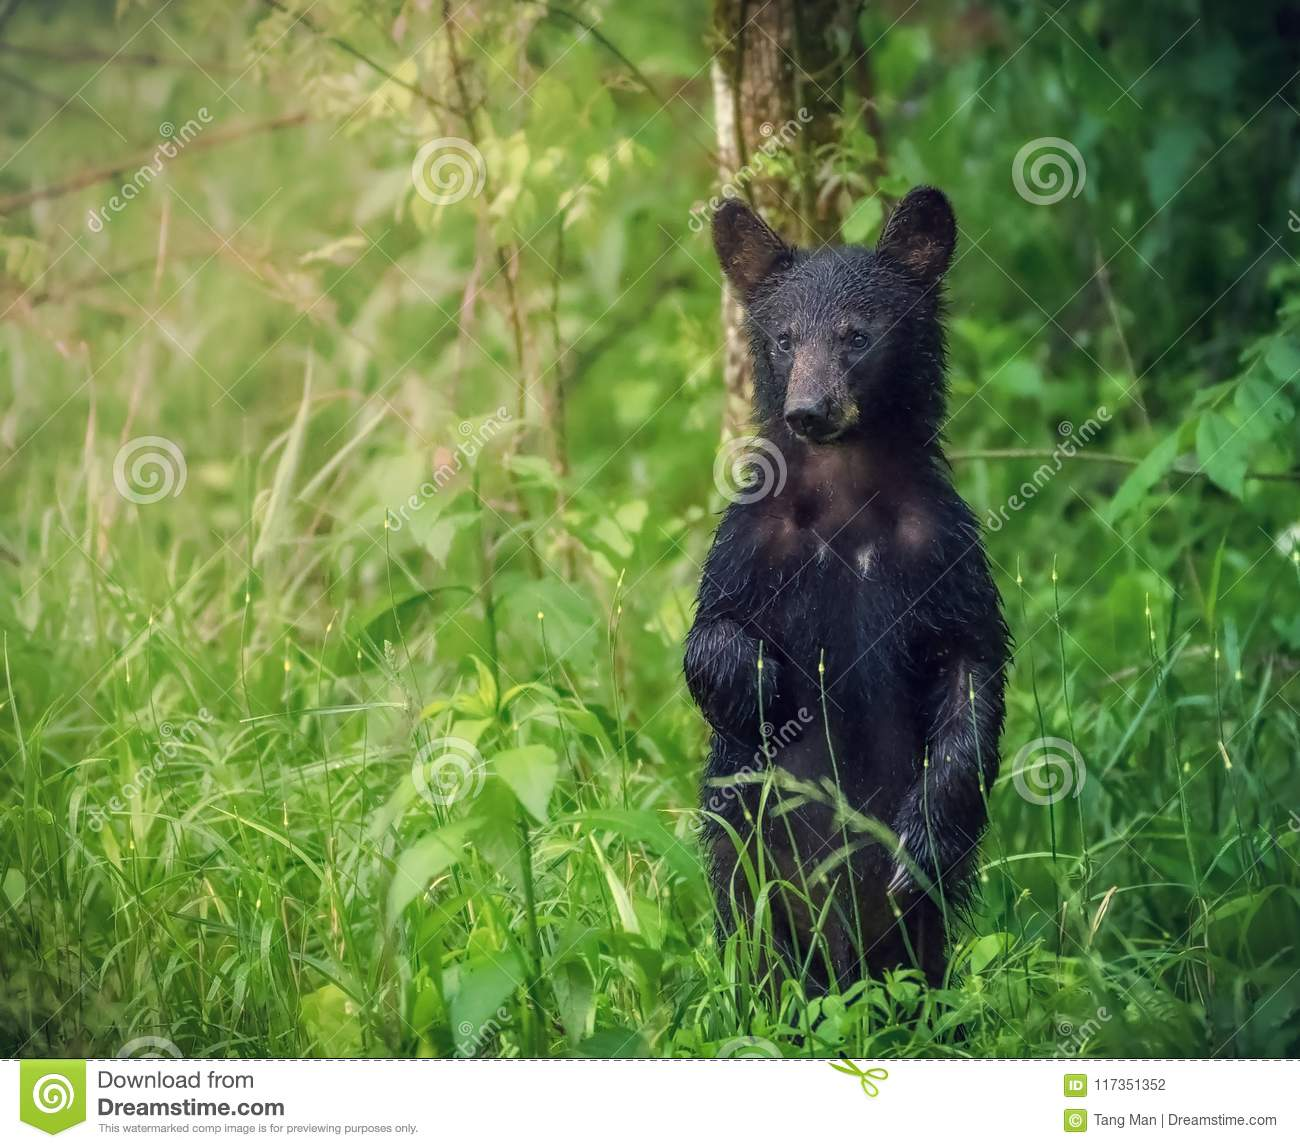 An american black bear stands and looks at the tourists at Great Smoky Mountains National Park